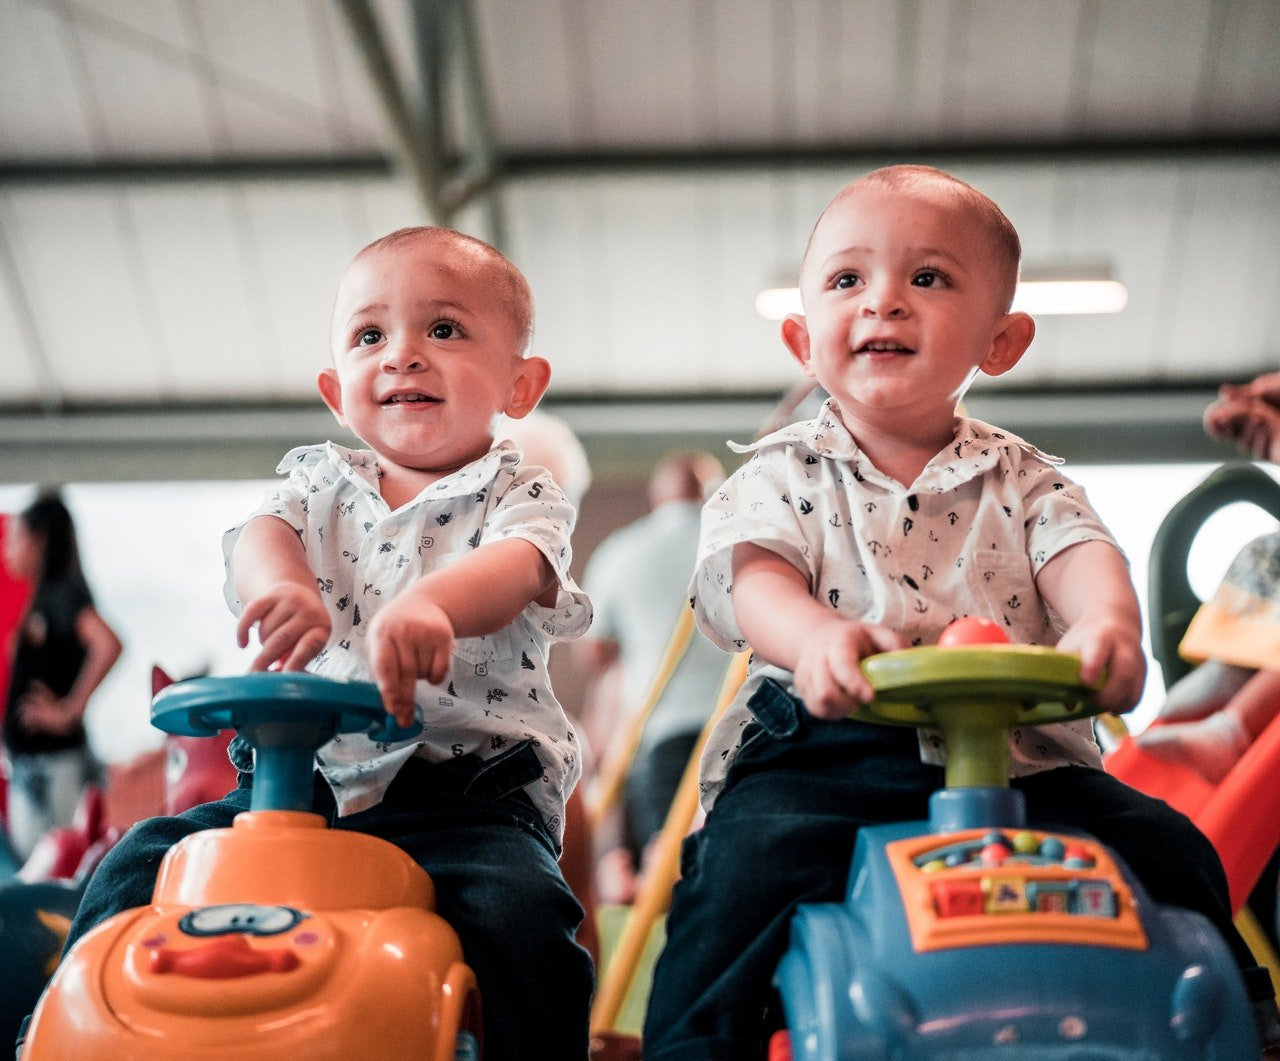 Twin babies sitting on toy cars | Source: Pexels